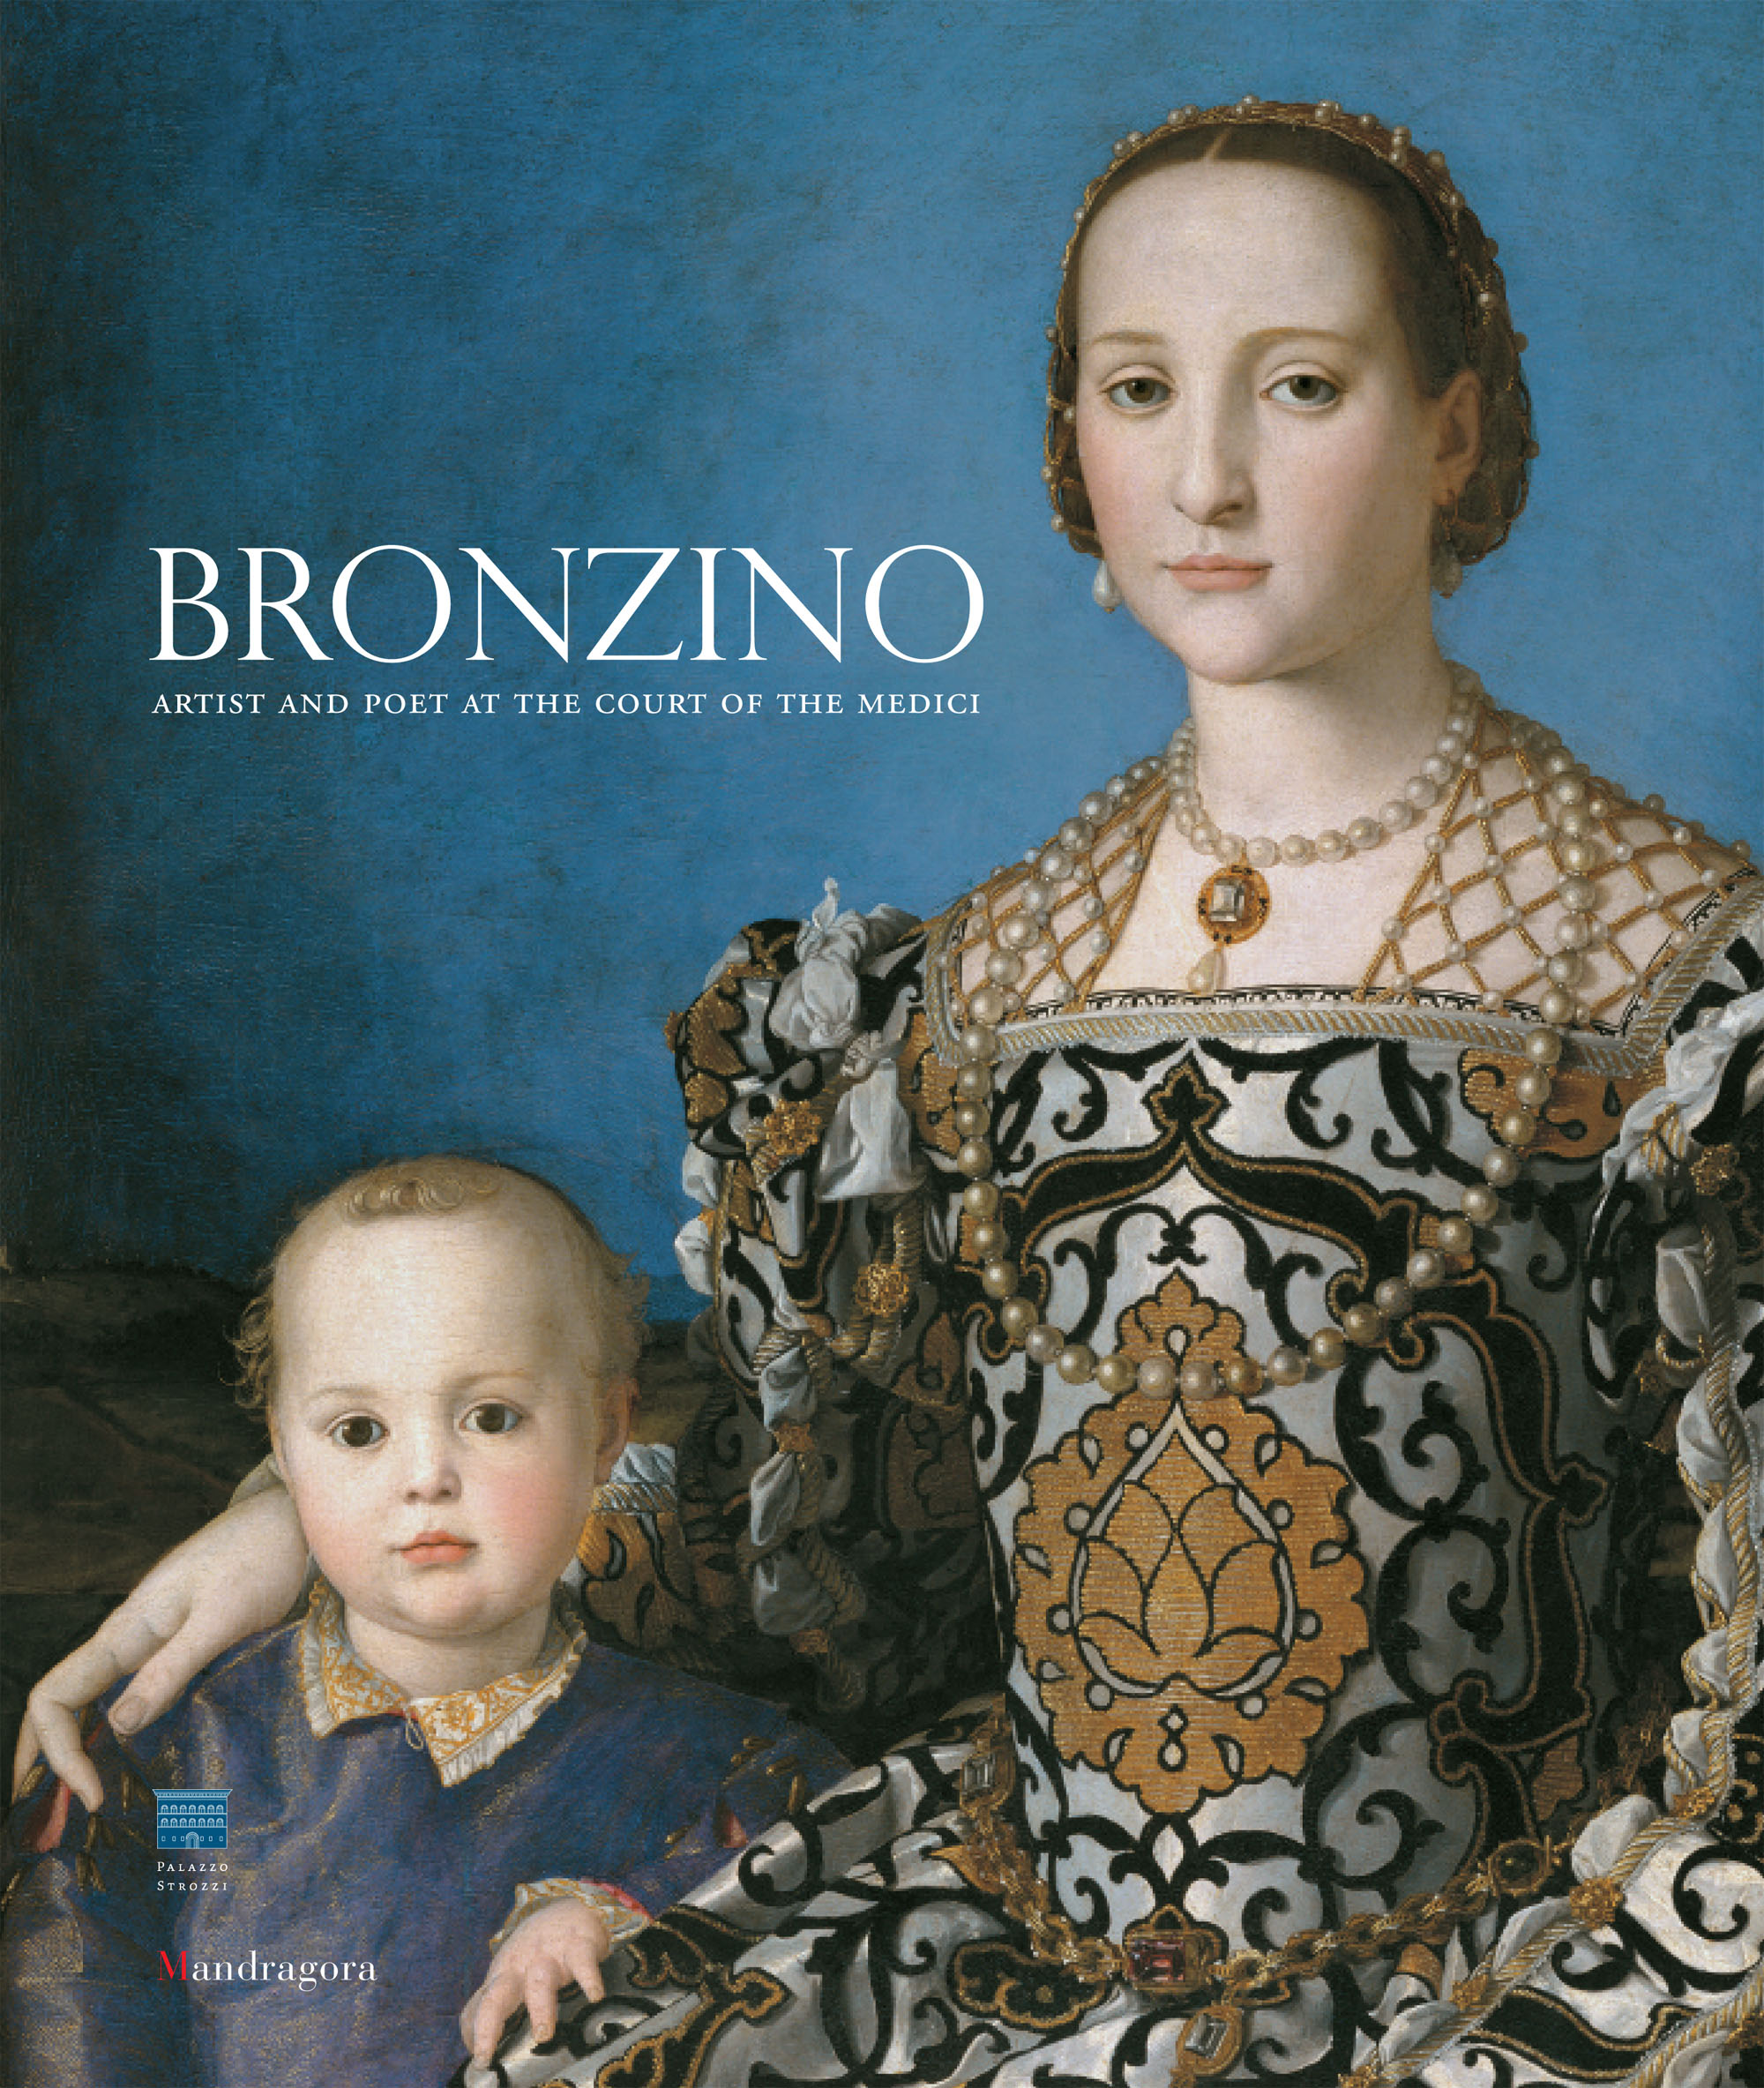 http://www.turismo.intoscana.it/allthingstuscany/tuscanyarts/files/2010/09/Bronzino-catalogue-cover.jpg